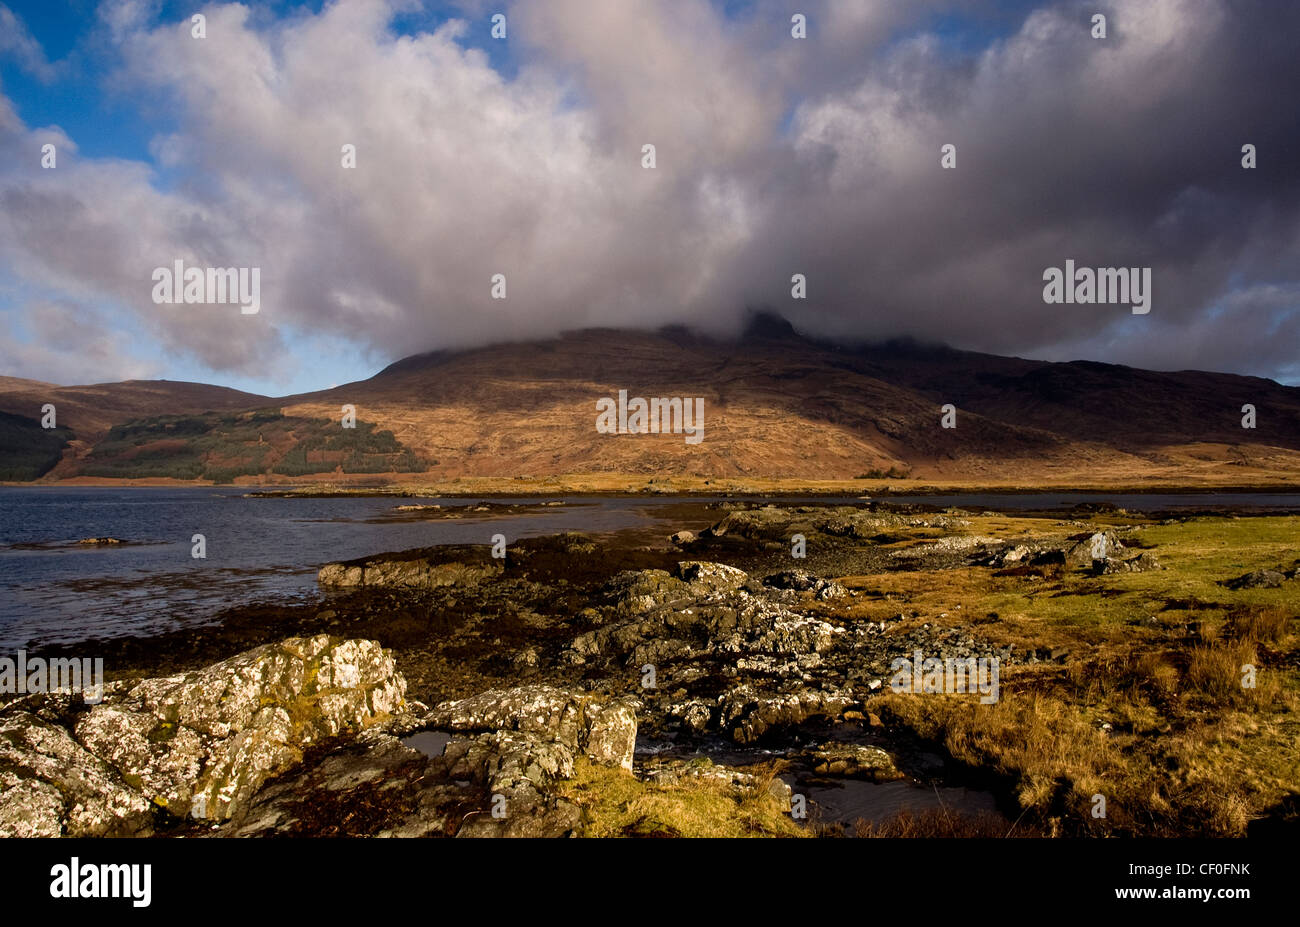 a landscape of loch scridain isle of mull off the west coast of scotland - Stock Image